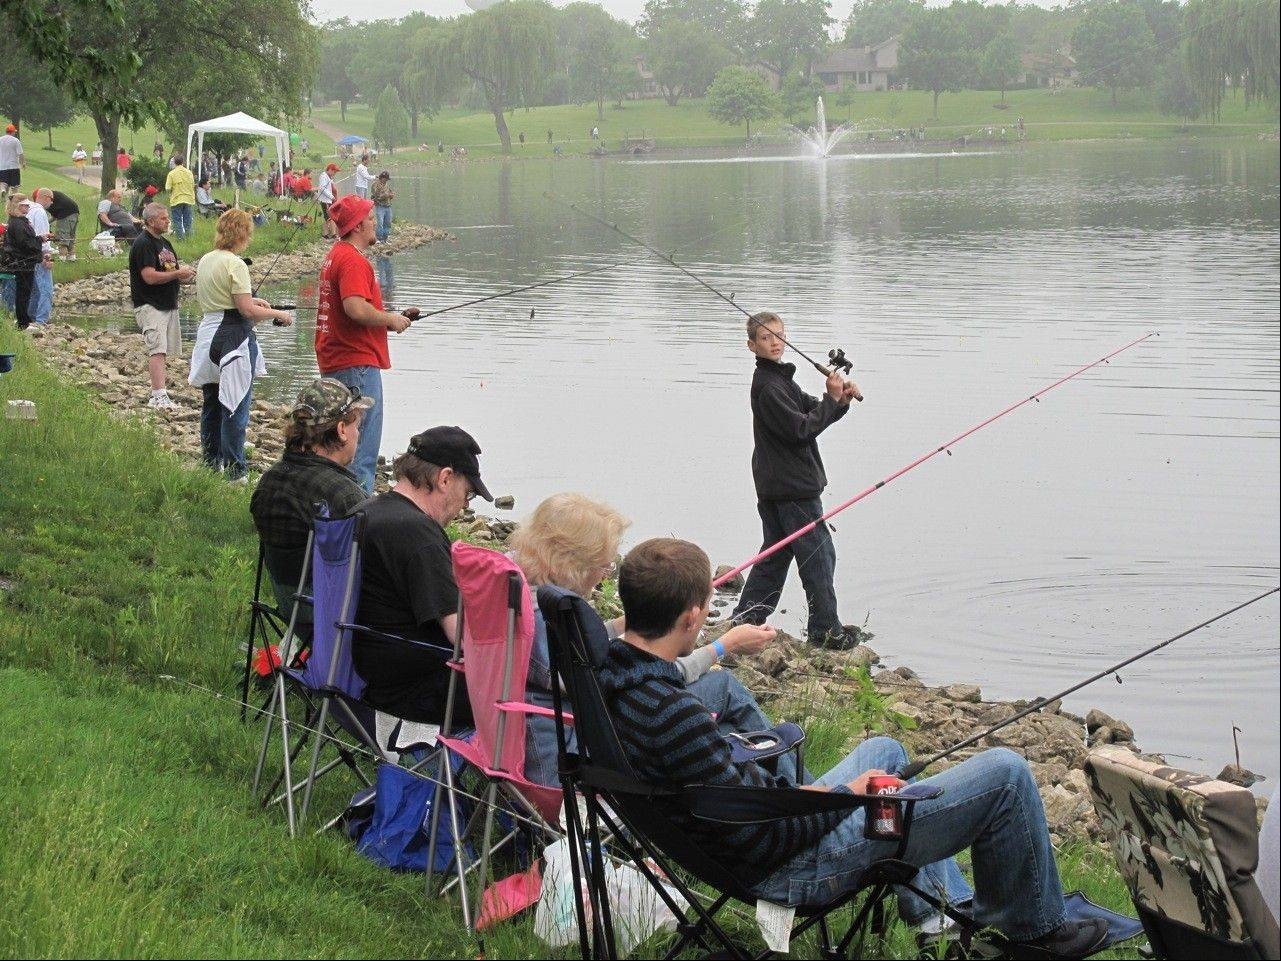 The annual fishing derby is a relaxing community event for the whole family.